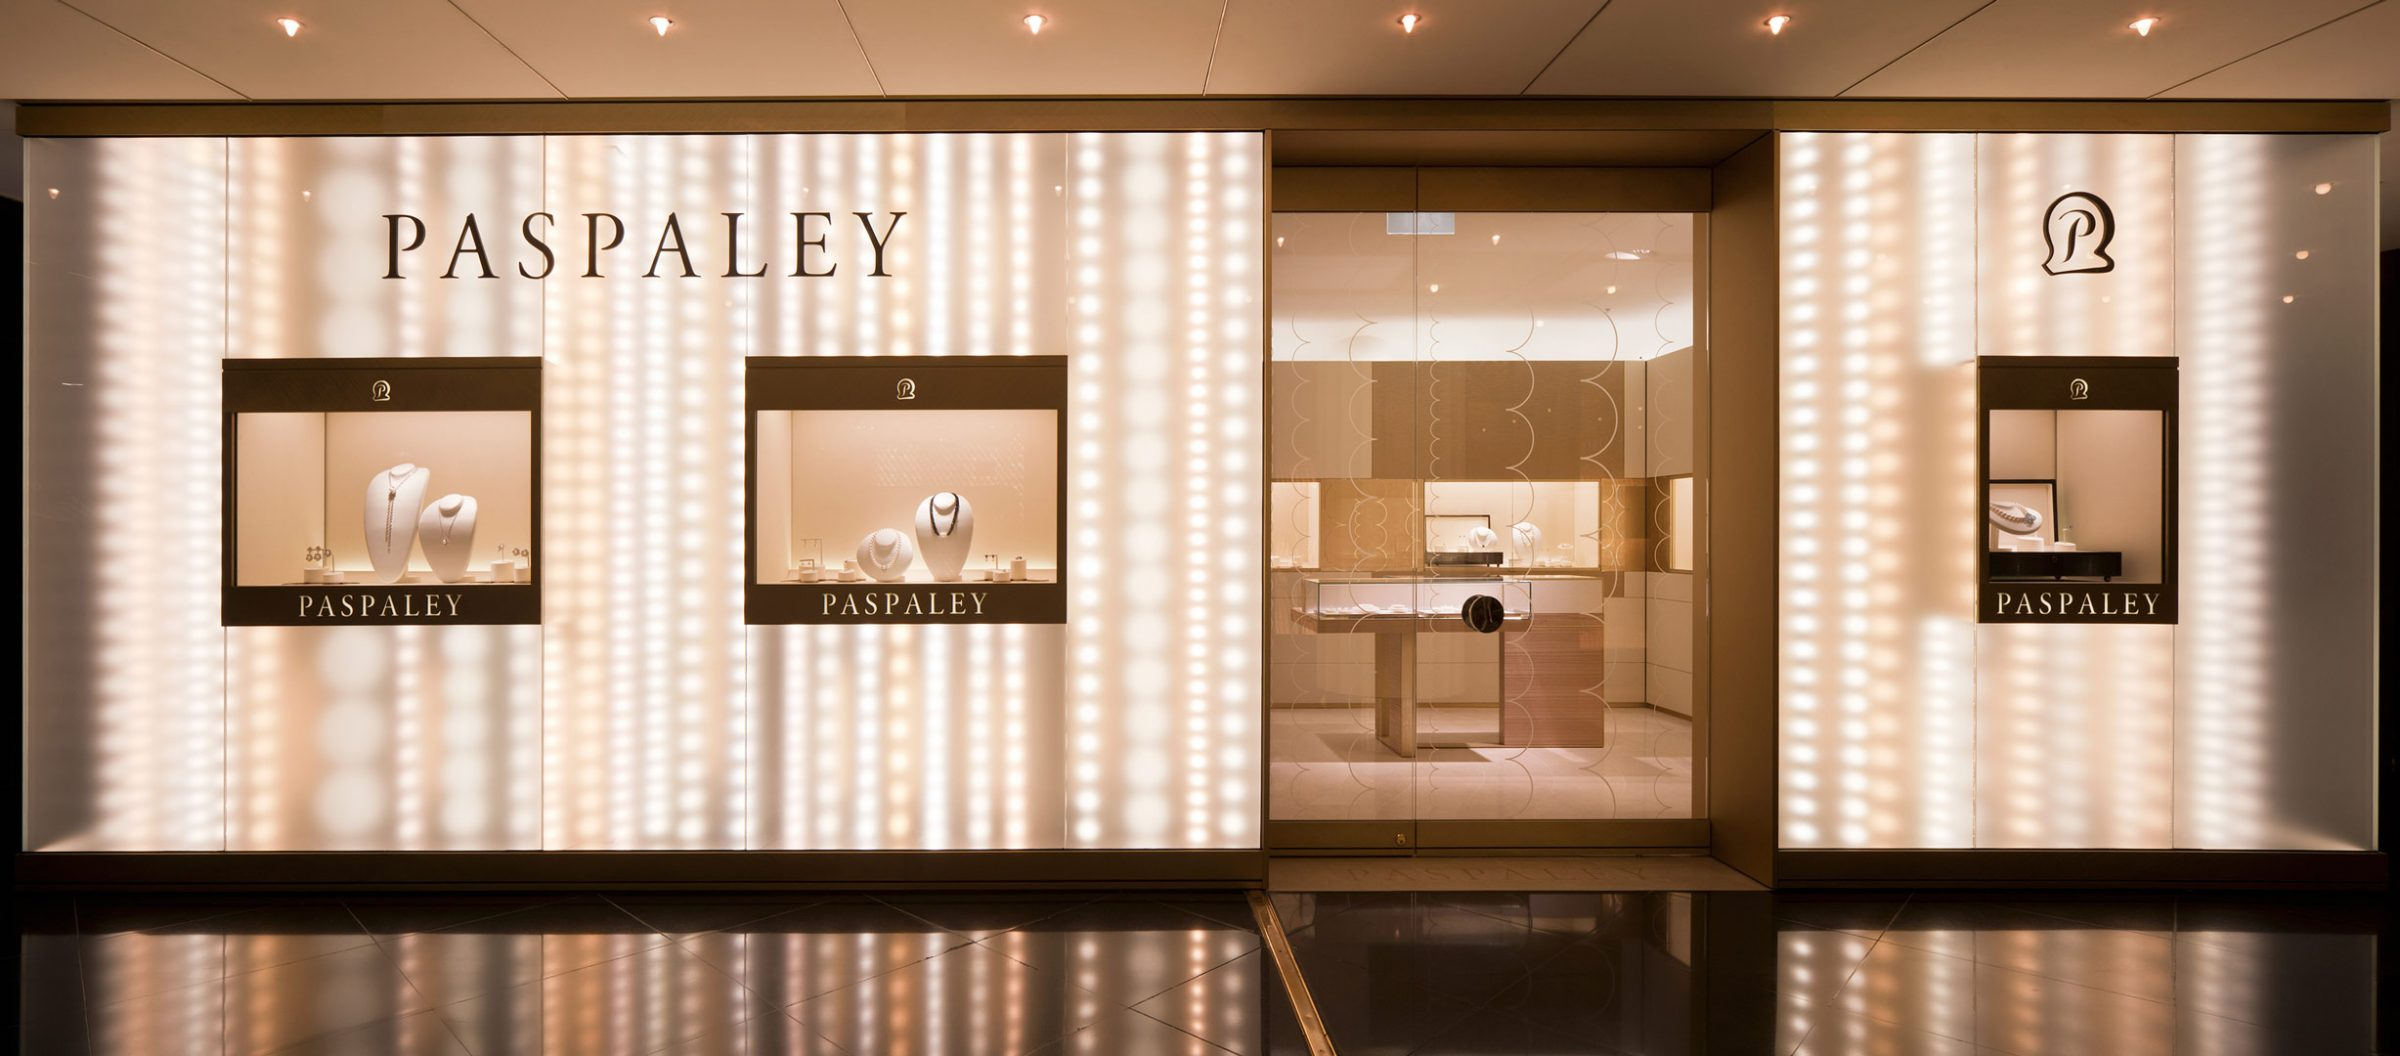 bespoke lighting paspaley dubai lightlab 2